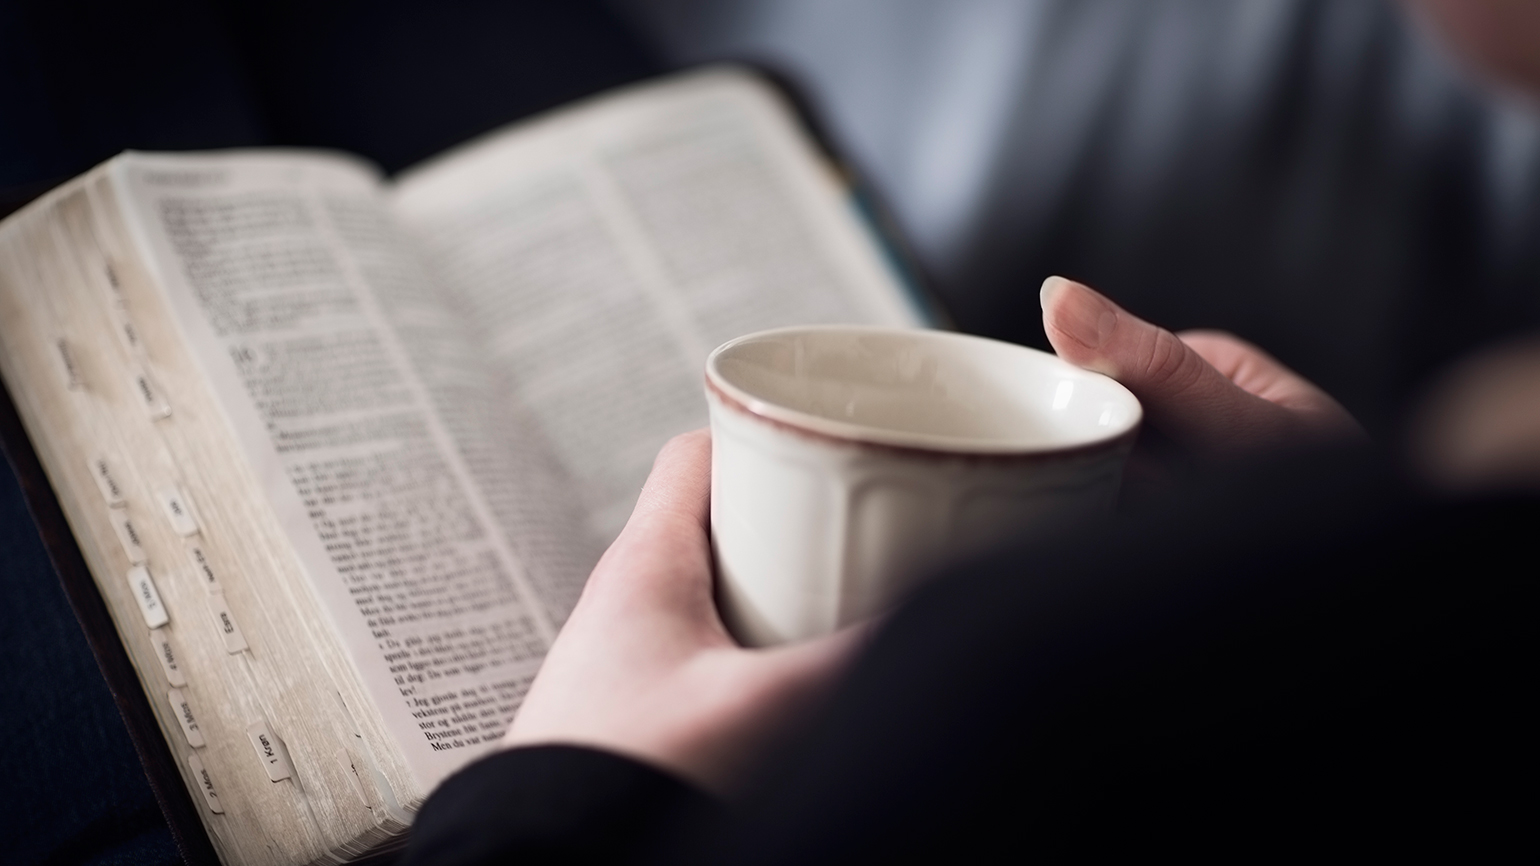 A woman holds a cup of coffee with an open Bible in her lap